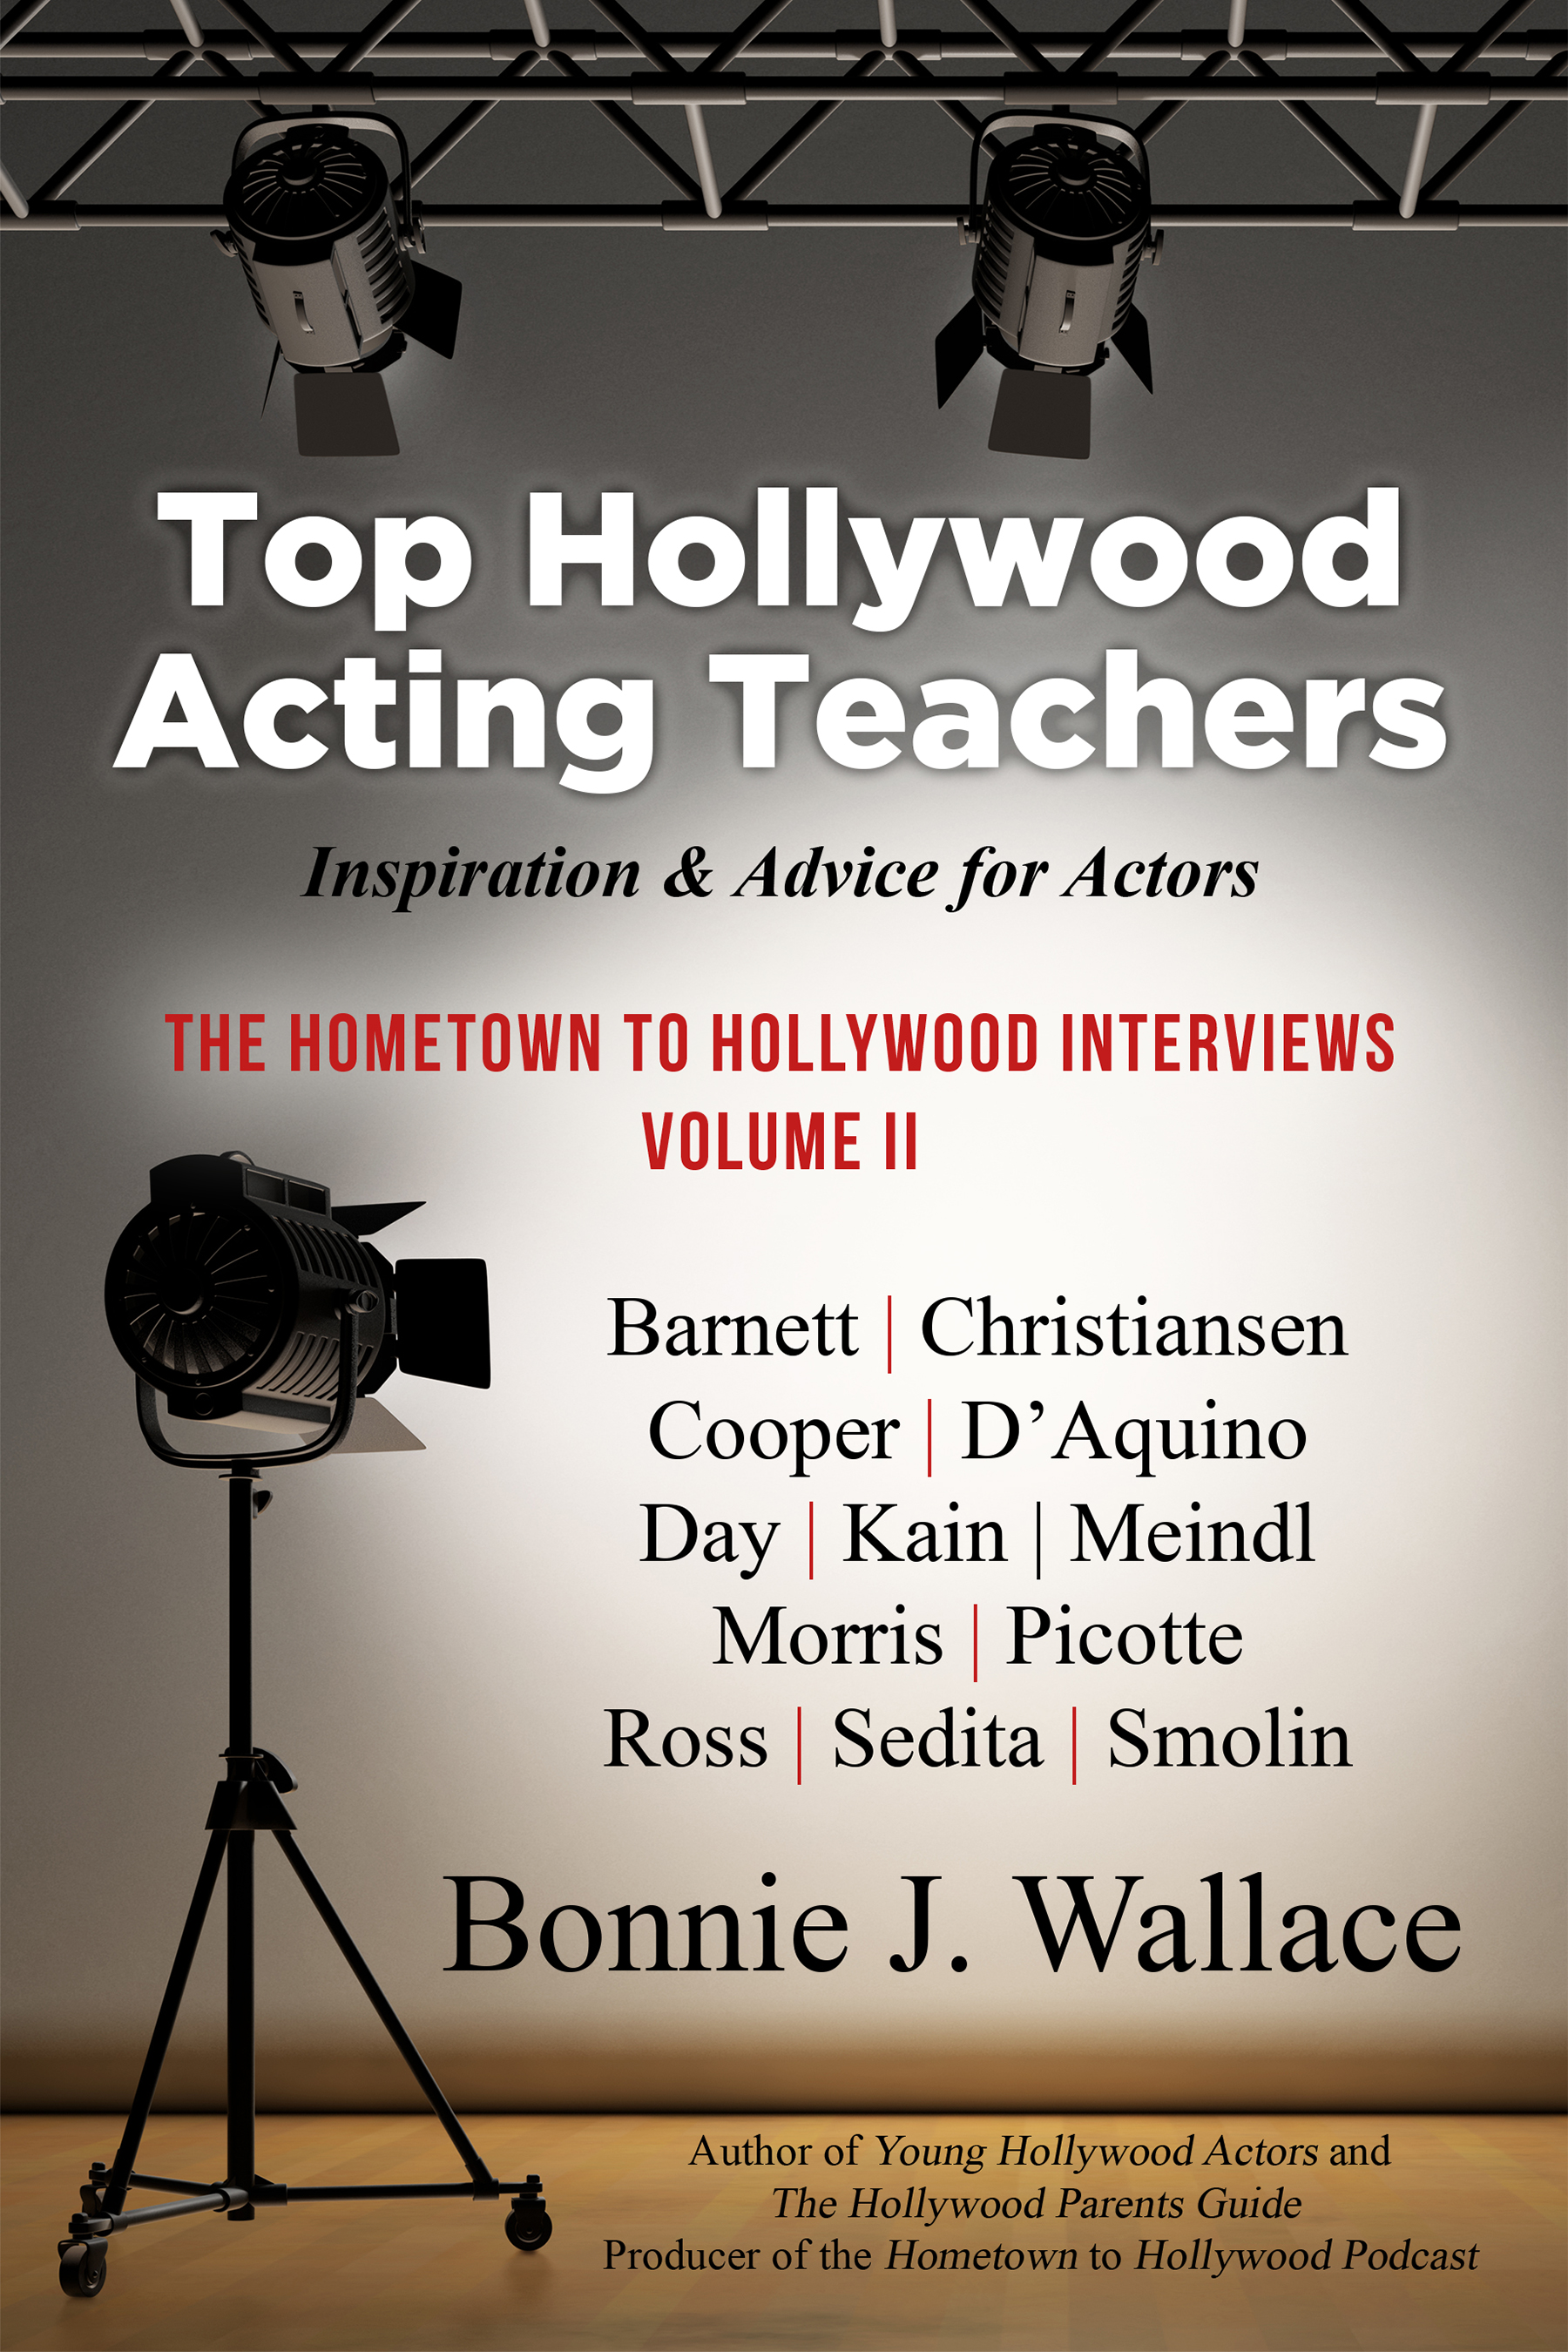 Bonnie J. Wallace's Top Hollywood Acting Teachers: Inspiration & Advice for Actors is Out October 6, 2020